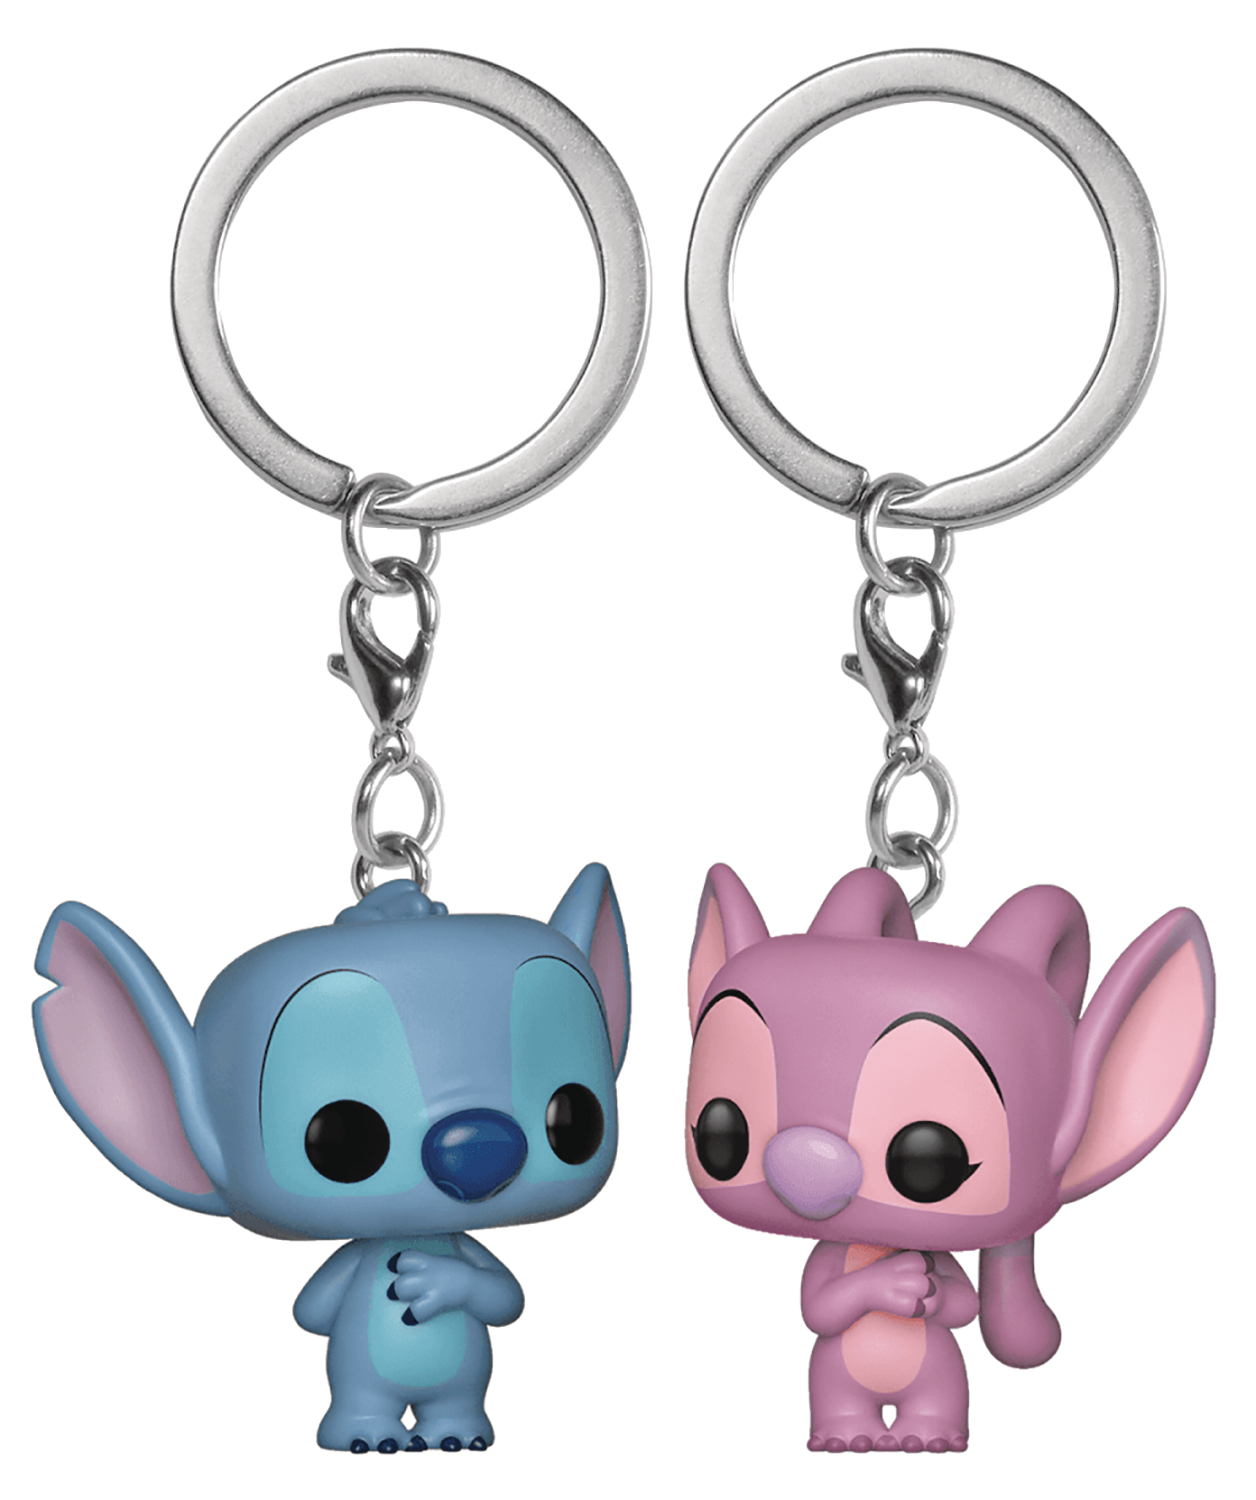 POP KEYCHAIN LILO & STITCH STITCH & ANGEL 2PK VIN FIG